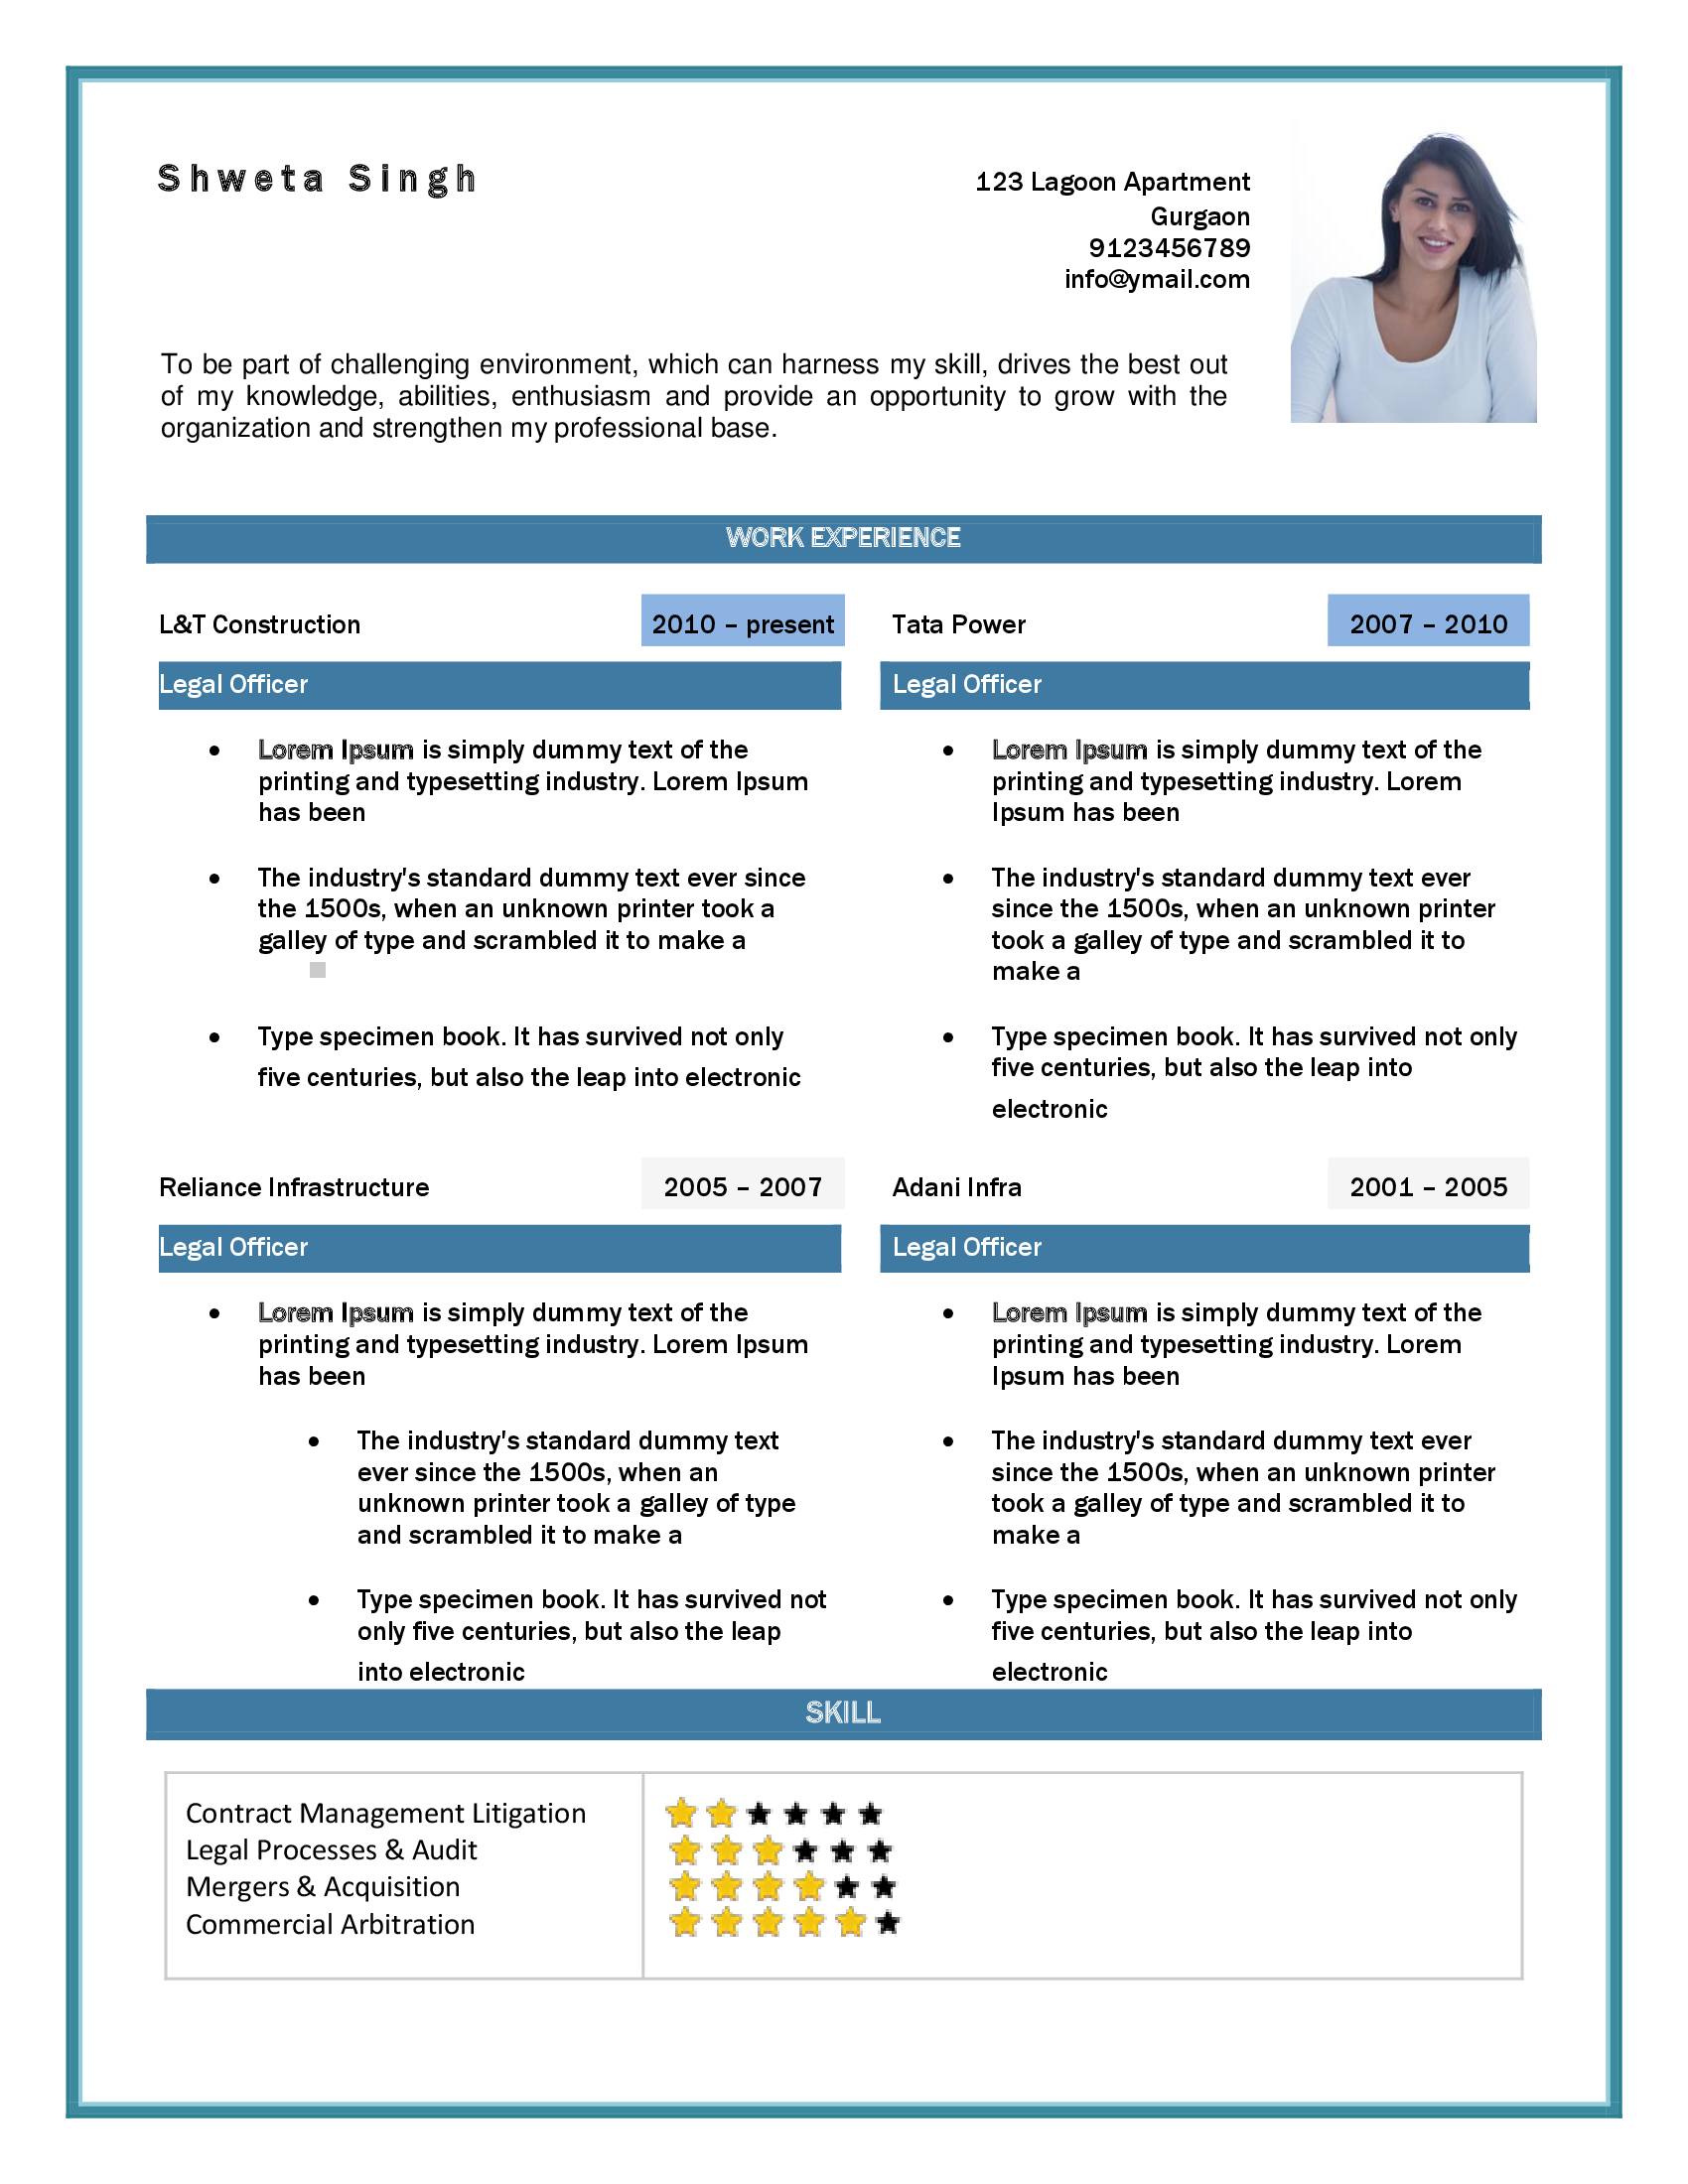 Opposenewapstandardsus  Ravishing Hr Executive Resume  Resume For Hr Executive  Hr Executive  With Lovely Enter Your Details With Astounding Leadership Skills Resume Examples Also Strong Objective Statements For Resume In Addition Free Printable Fill In The Blank Resume Templates And Making A Professional Resume As Well As Cover Pages For Resumes Additionally Registrar Resume From Resumetemplatesamplescom With Opposenewapstandardsus  Lovely Hr Executive Resume  Resume For Hr Executive  Hr Executive  With Astounding Enter Your Details And Ravishing Leadership Skills Resume Examples Also Strong Objective Statements For Resume In Addition Free Printable Fill In The Blank Resume Templates From Resumetemplatesamplescom